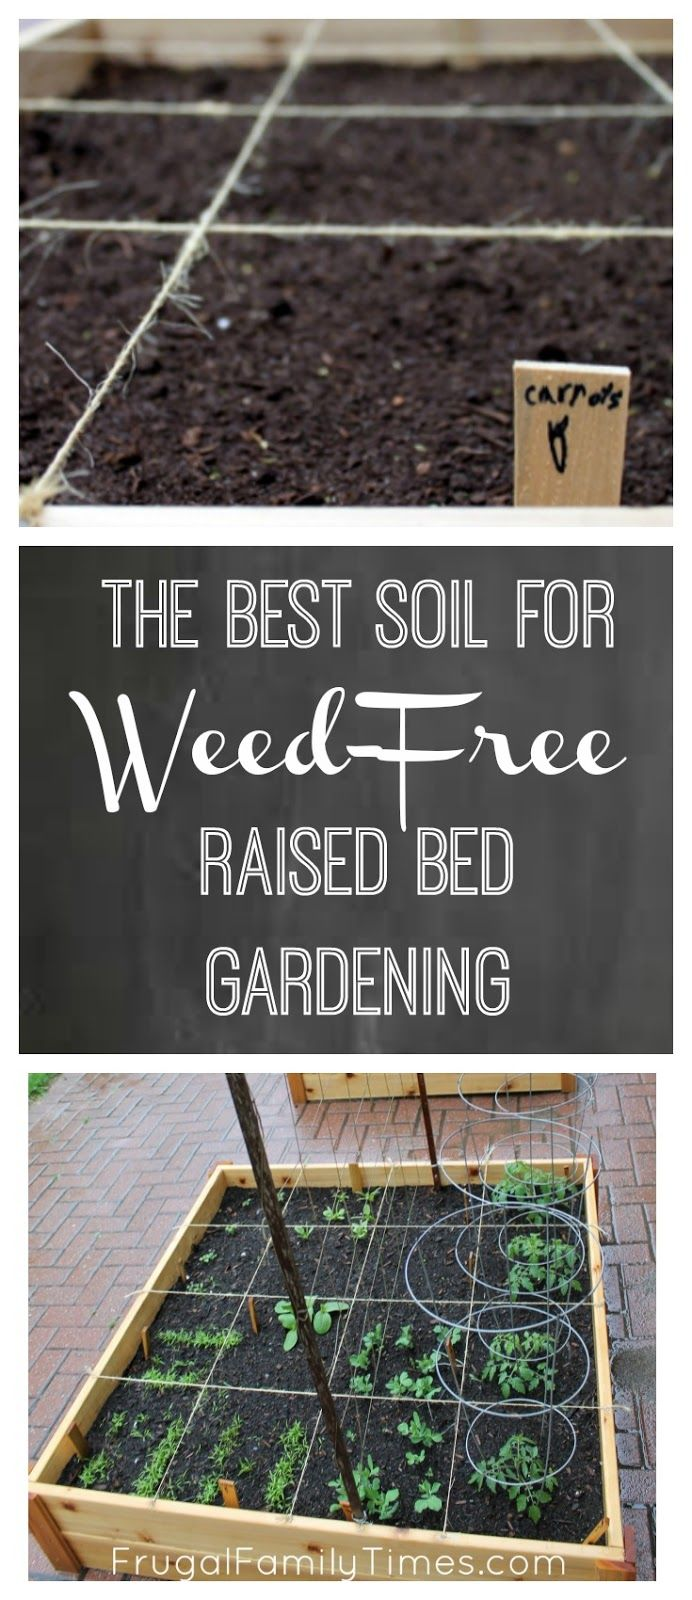 Growing Vegetables in our Driveway The Best Soil for Raised Garden